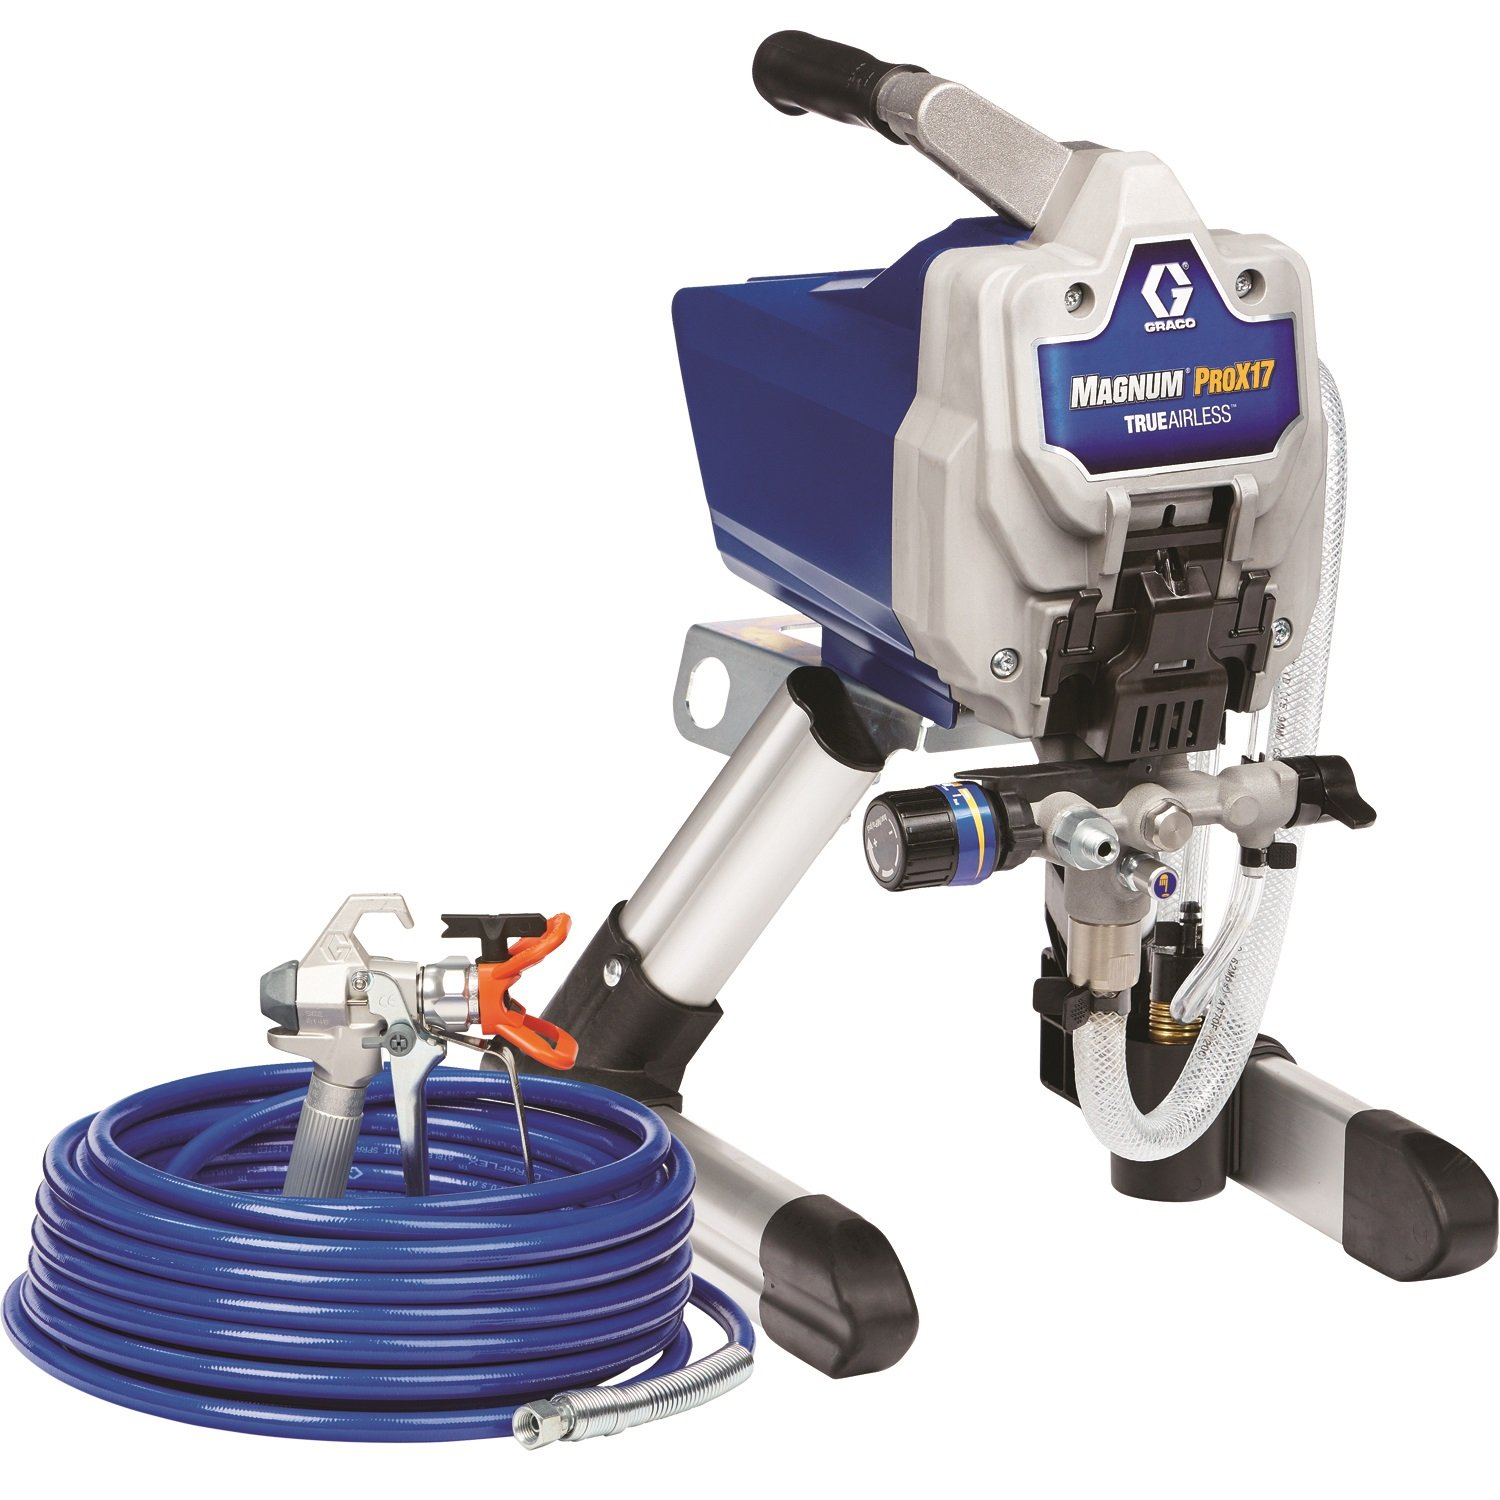 Graco 17G177 Magnum ProX17 Stand Paint Sprayer by Graco